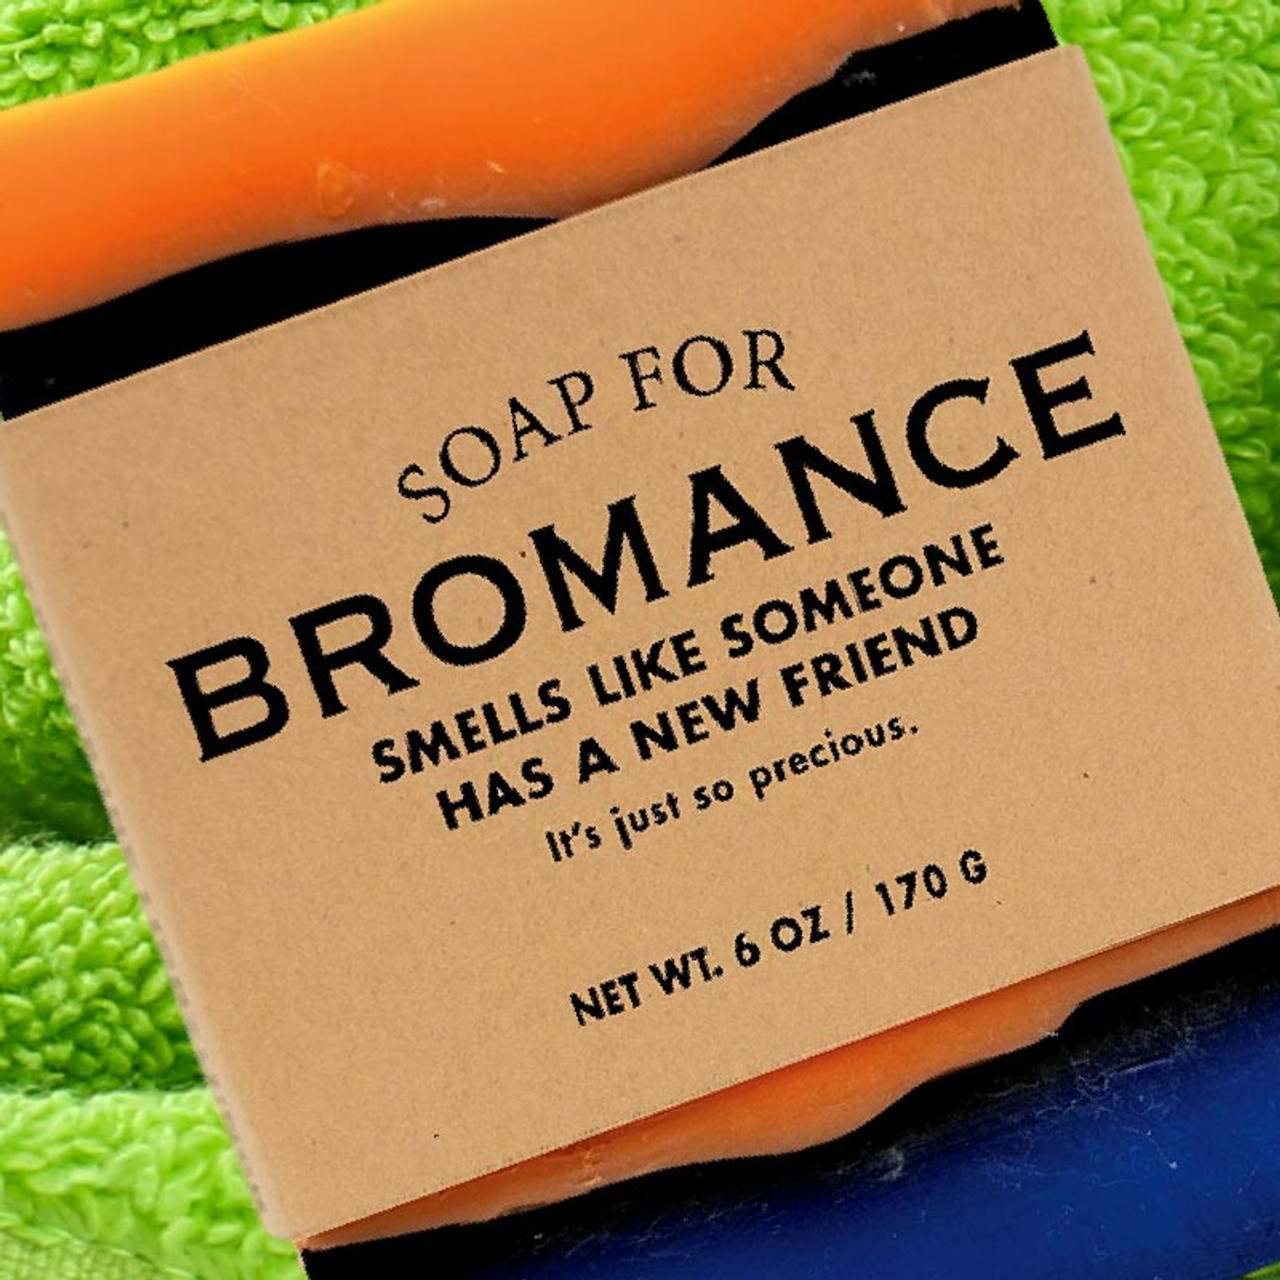 Soap for Bromance - Smells like someone has a new friend.